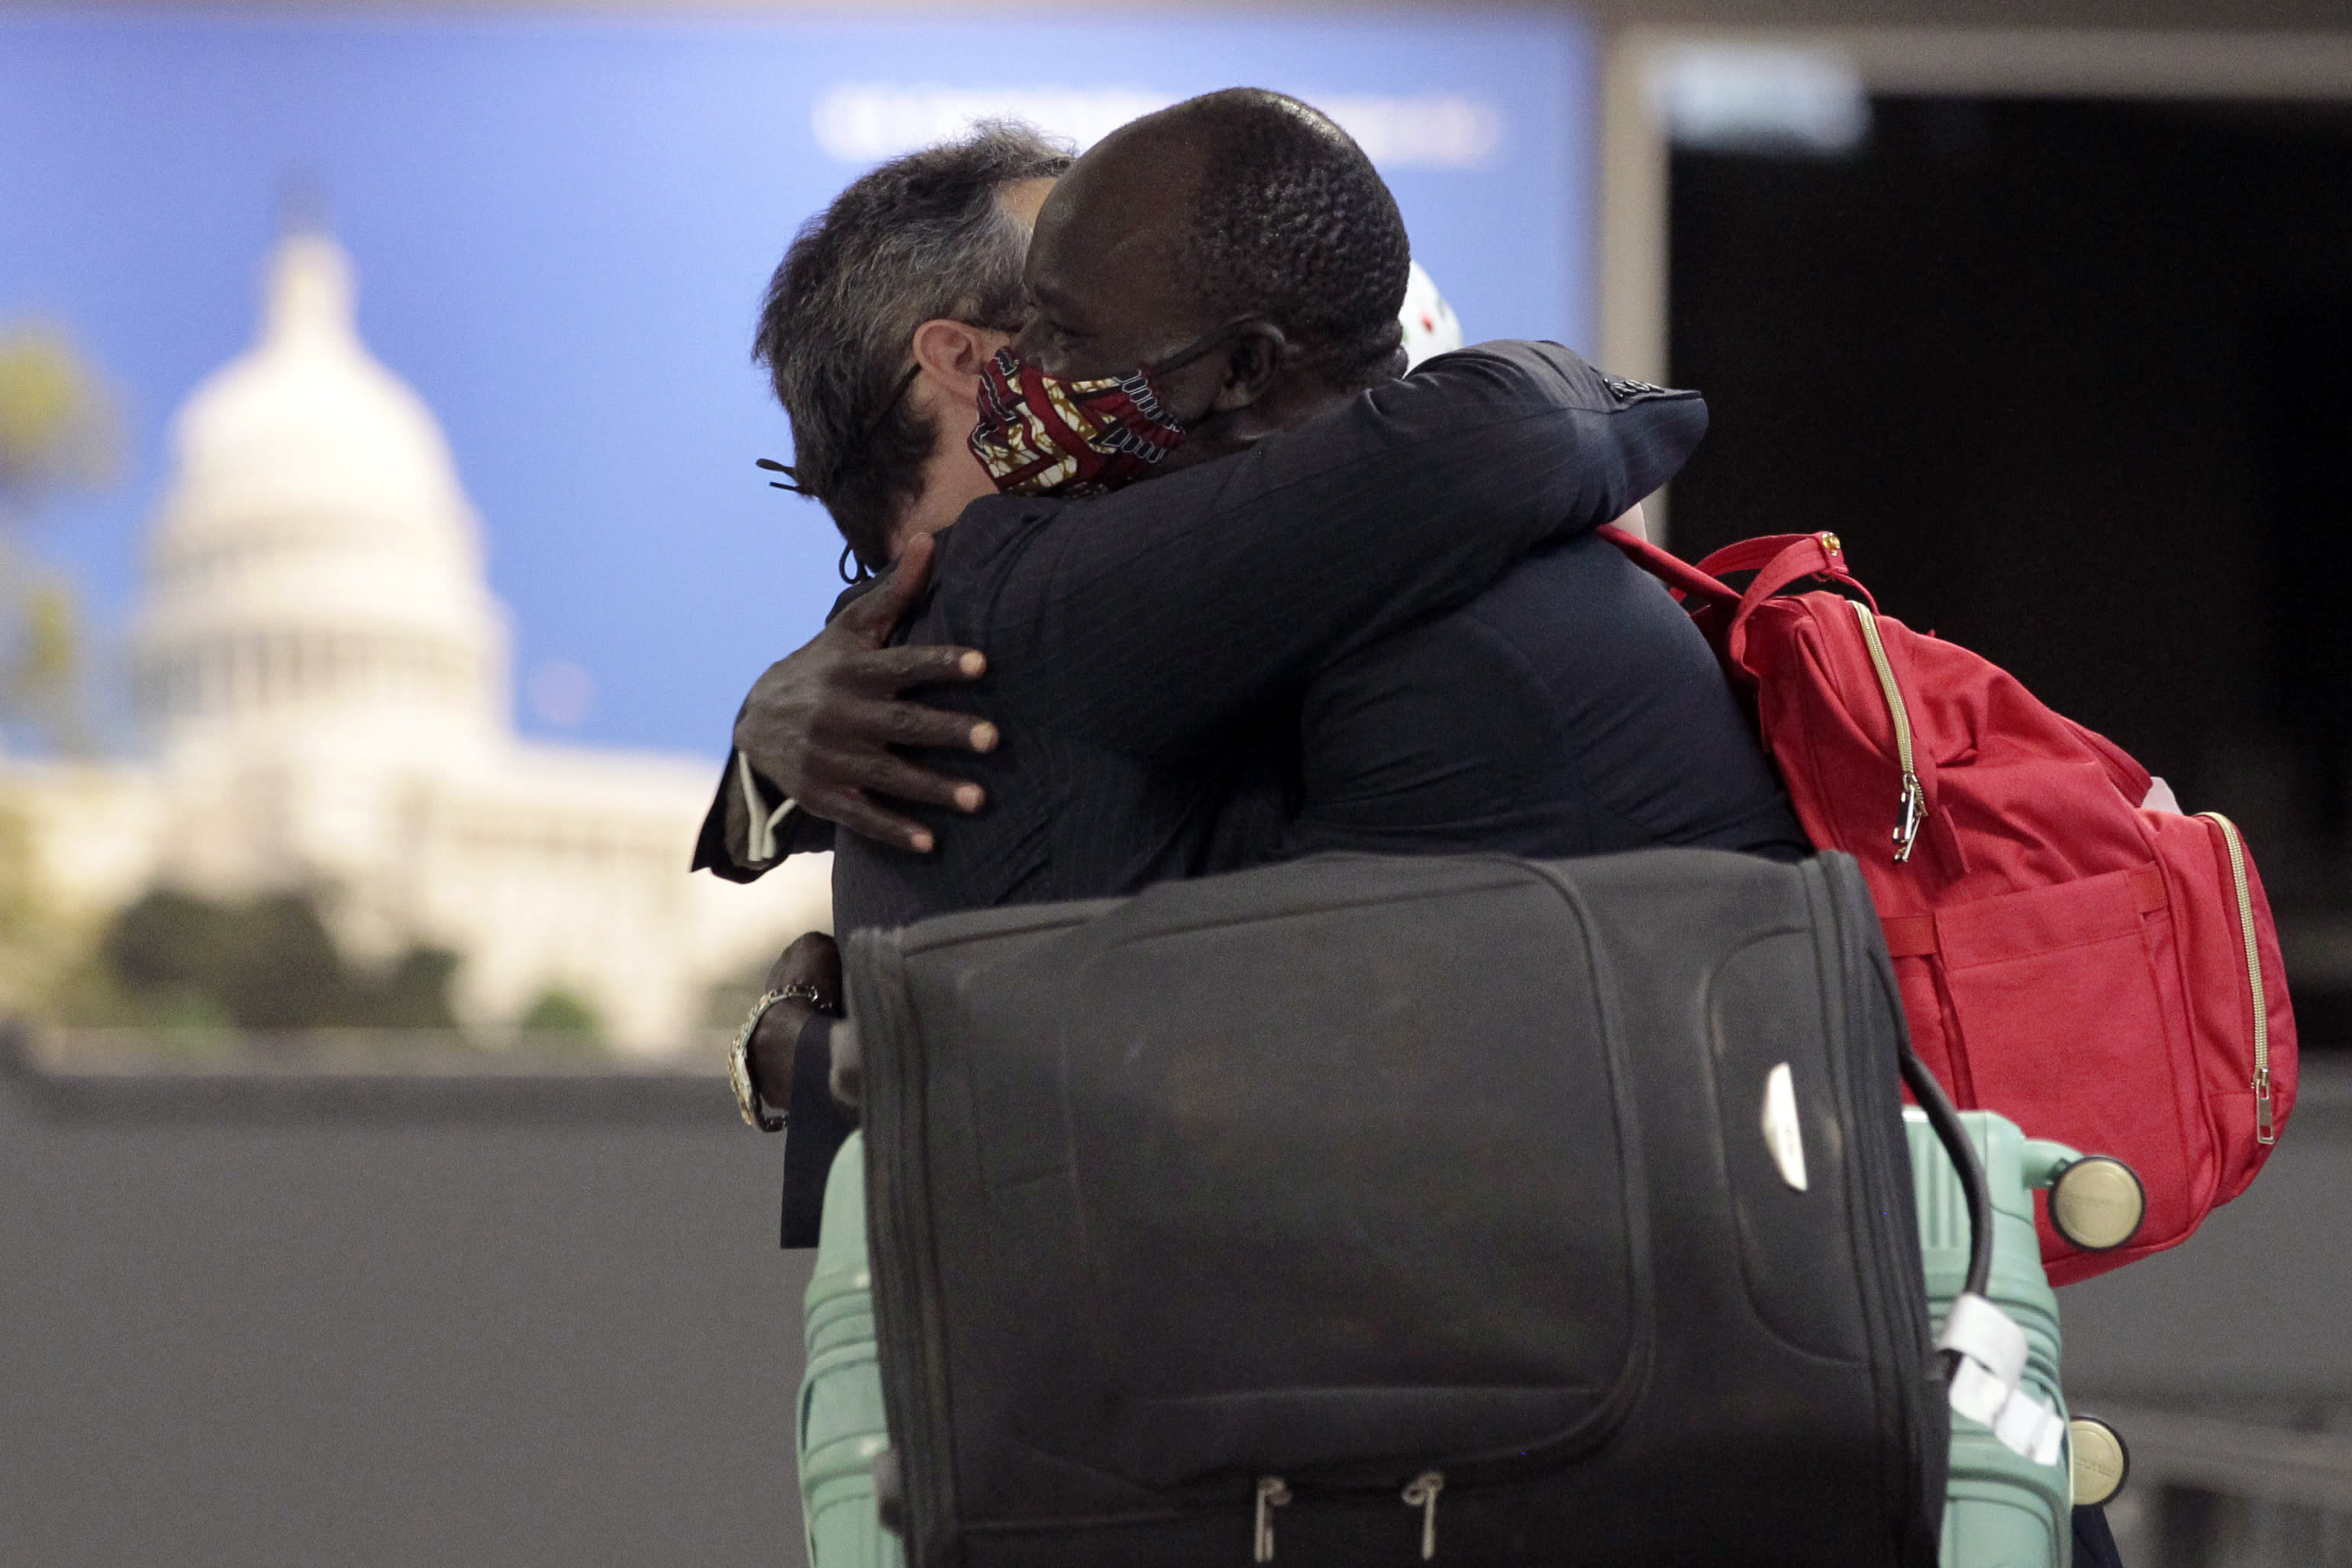 Peter Biar Ajak, right, hugs his lawyer Jared Genser upon his arrival at Washington Dulles International Airport in Chantilly, Va., Thursday, July 23, 2020. (AP Photo/Luis M. Alvarez)